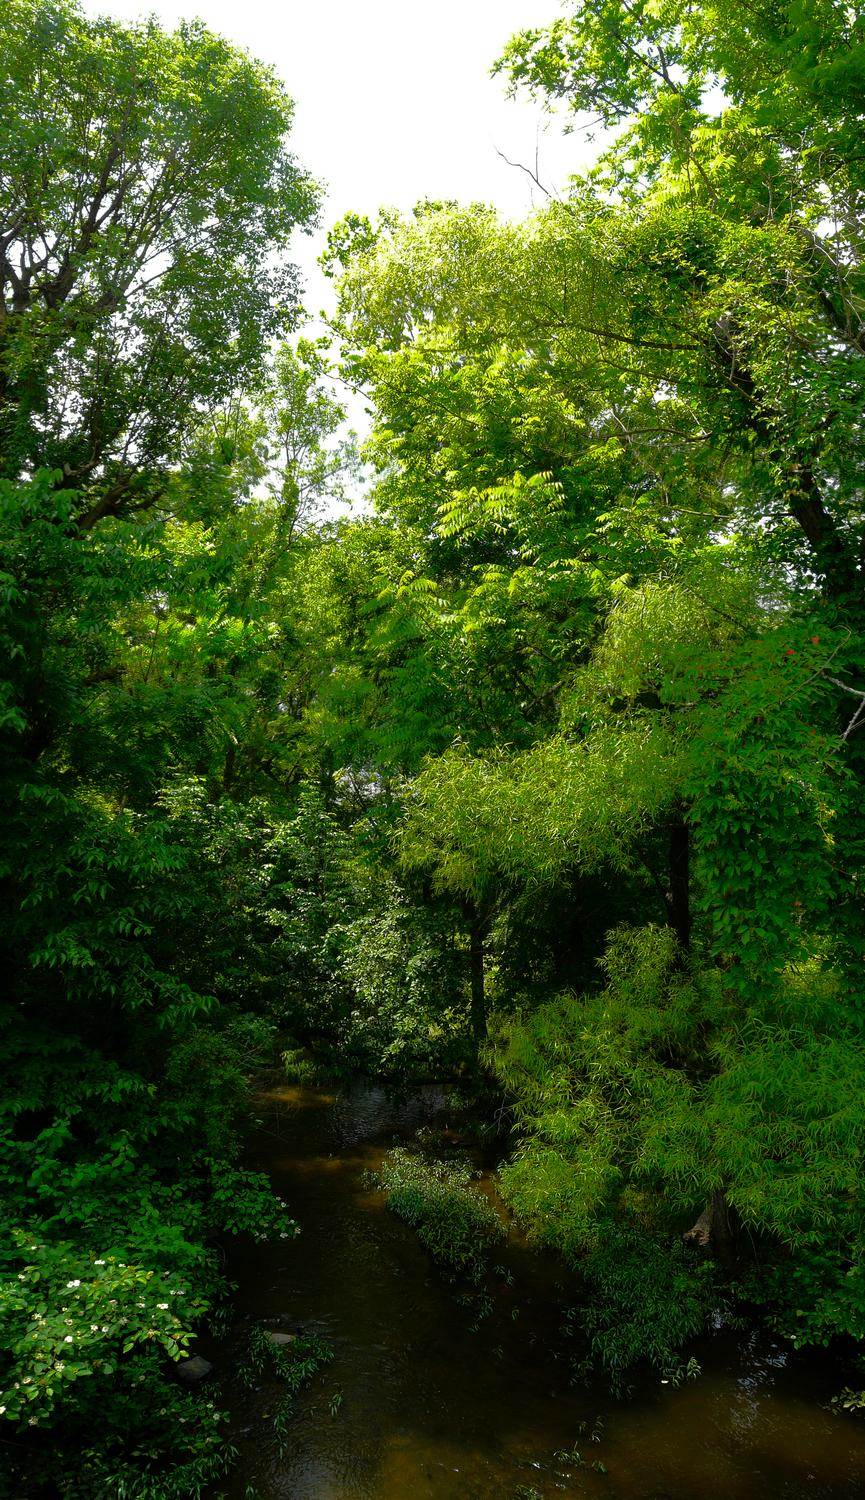 - A vertical panorama showing the trees along the banks of Chestnut Lick - Panasonic DMC-FZ18 - - art  - photography - by Tony Karp